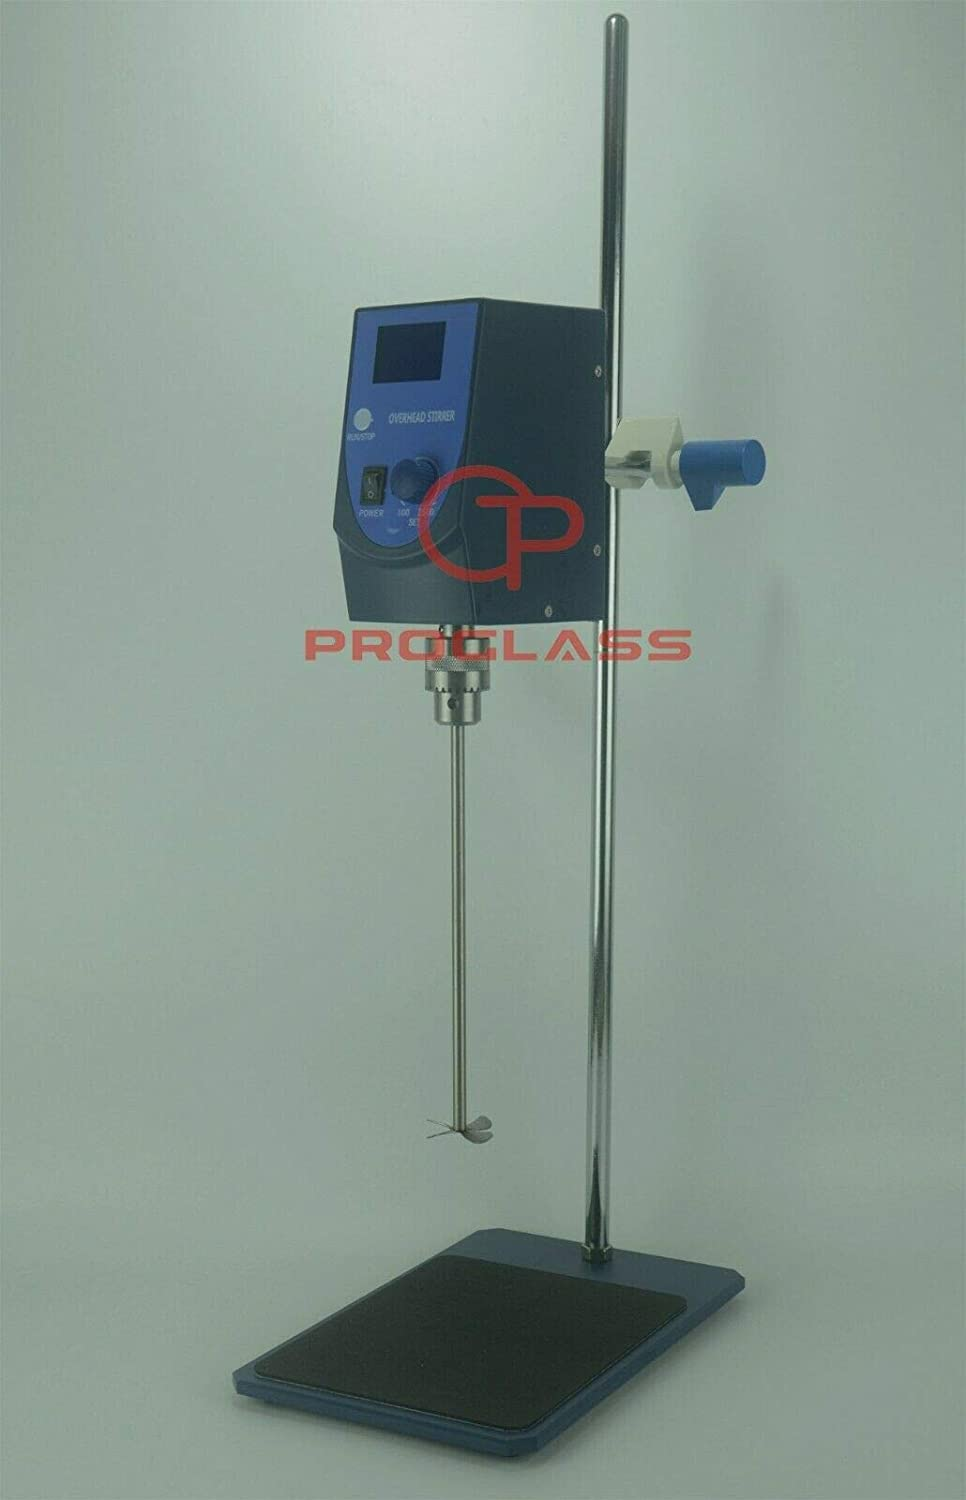 Proglass 40L Electric Overhead Stirrer LCD Digital Overhead Stirrer Mixer with Stirring Rod and Stand 100-2500RPM